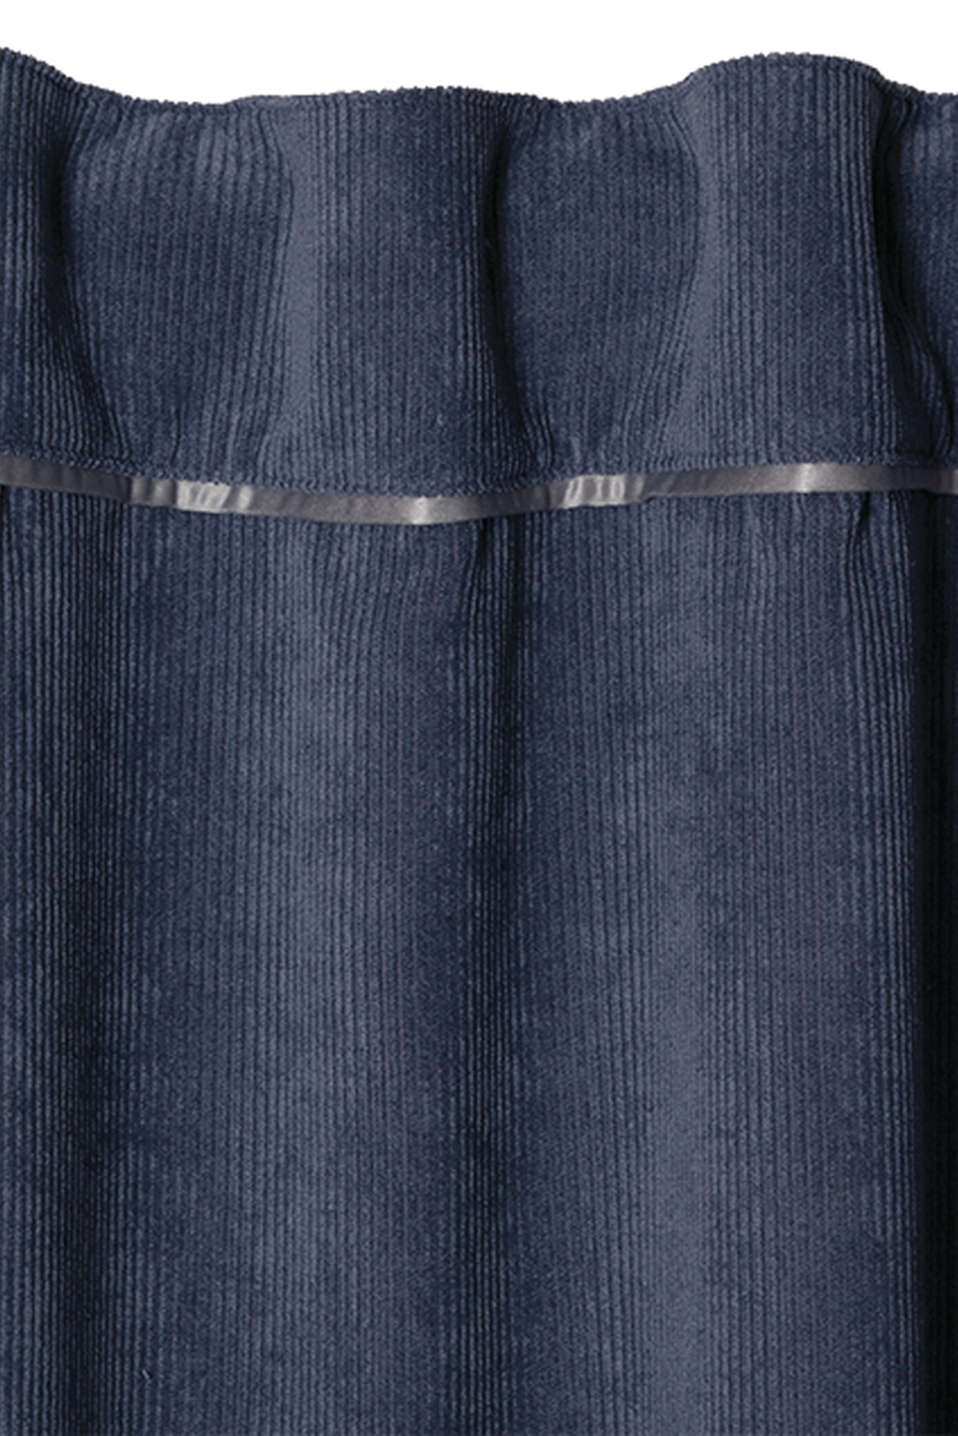 Corduroy curtains with concealed loops, BLUE, detail image number 1